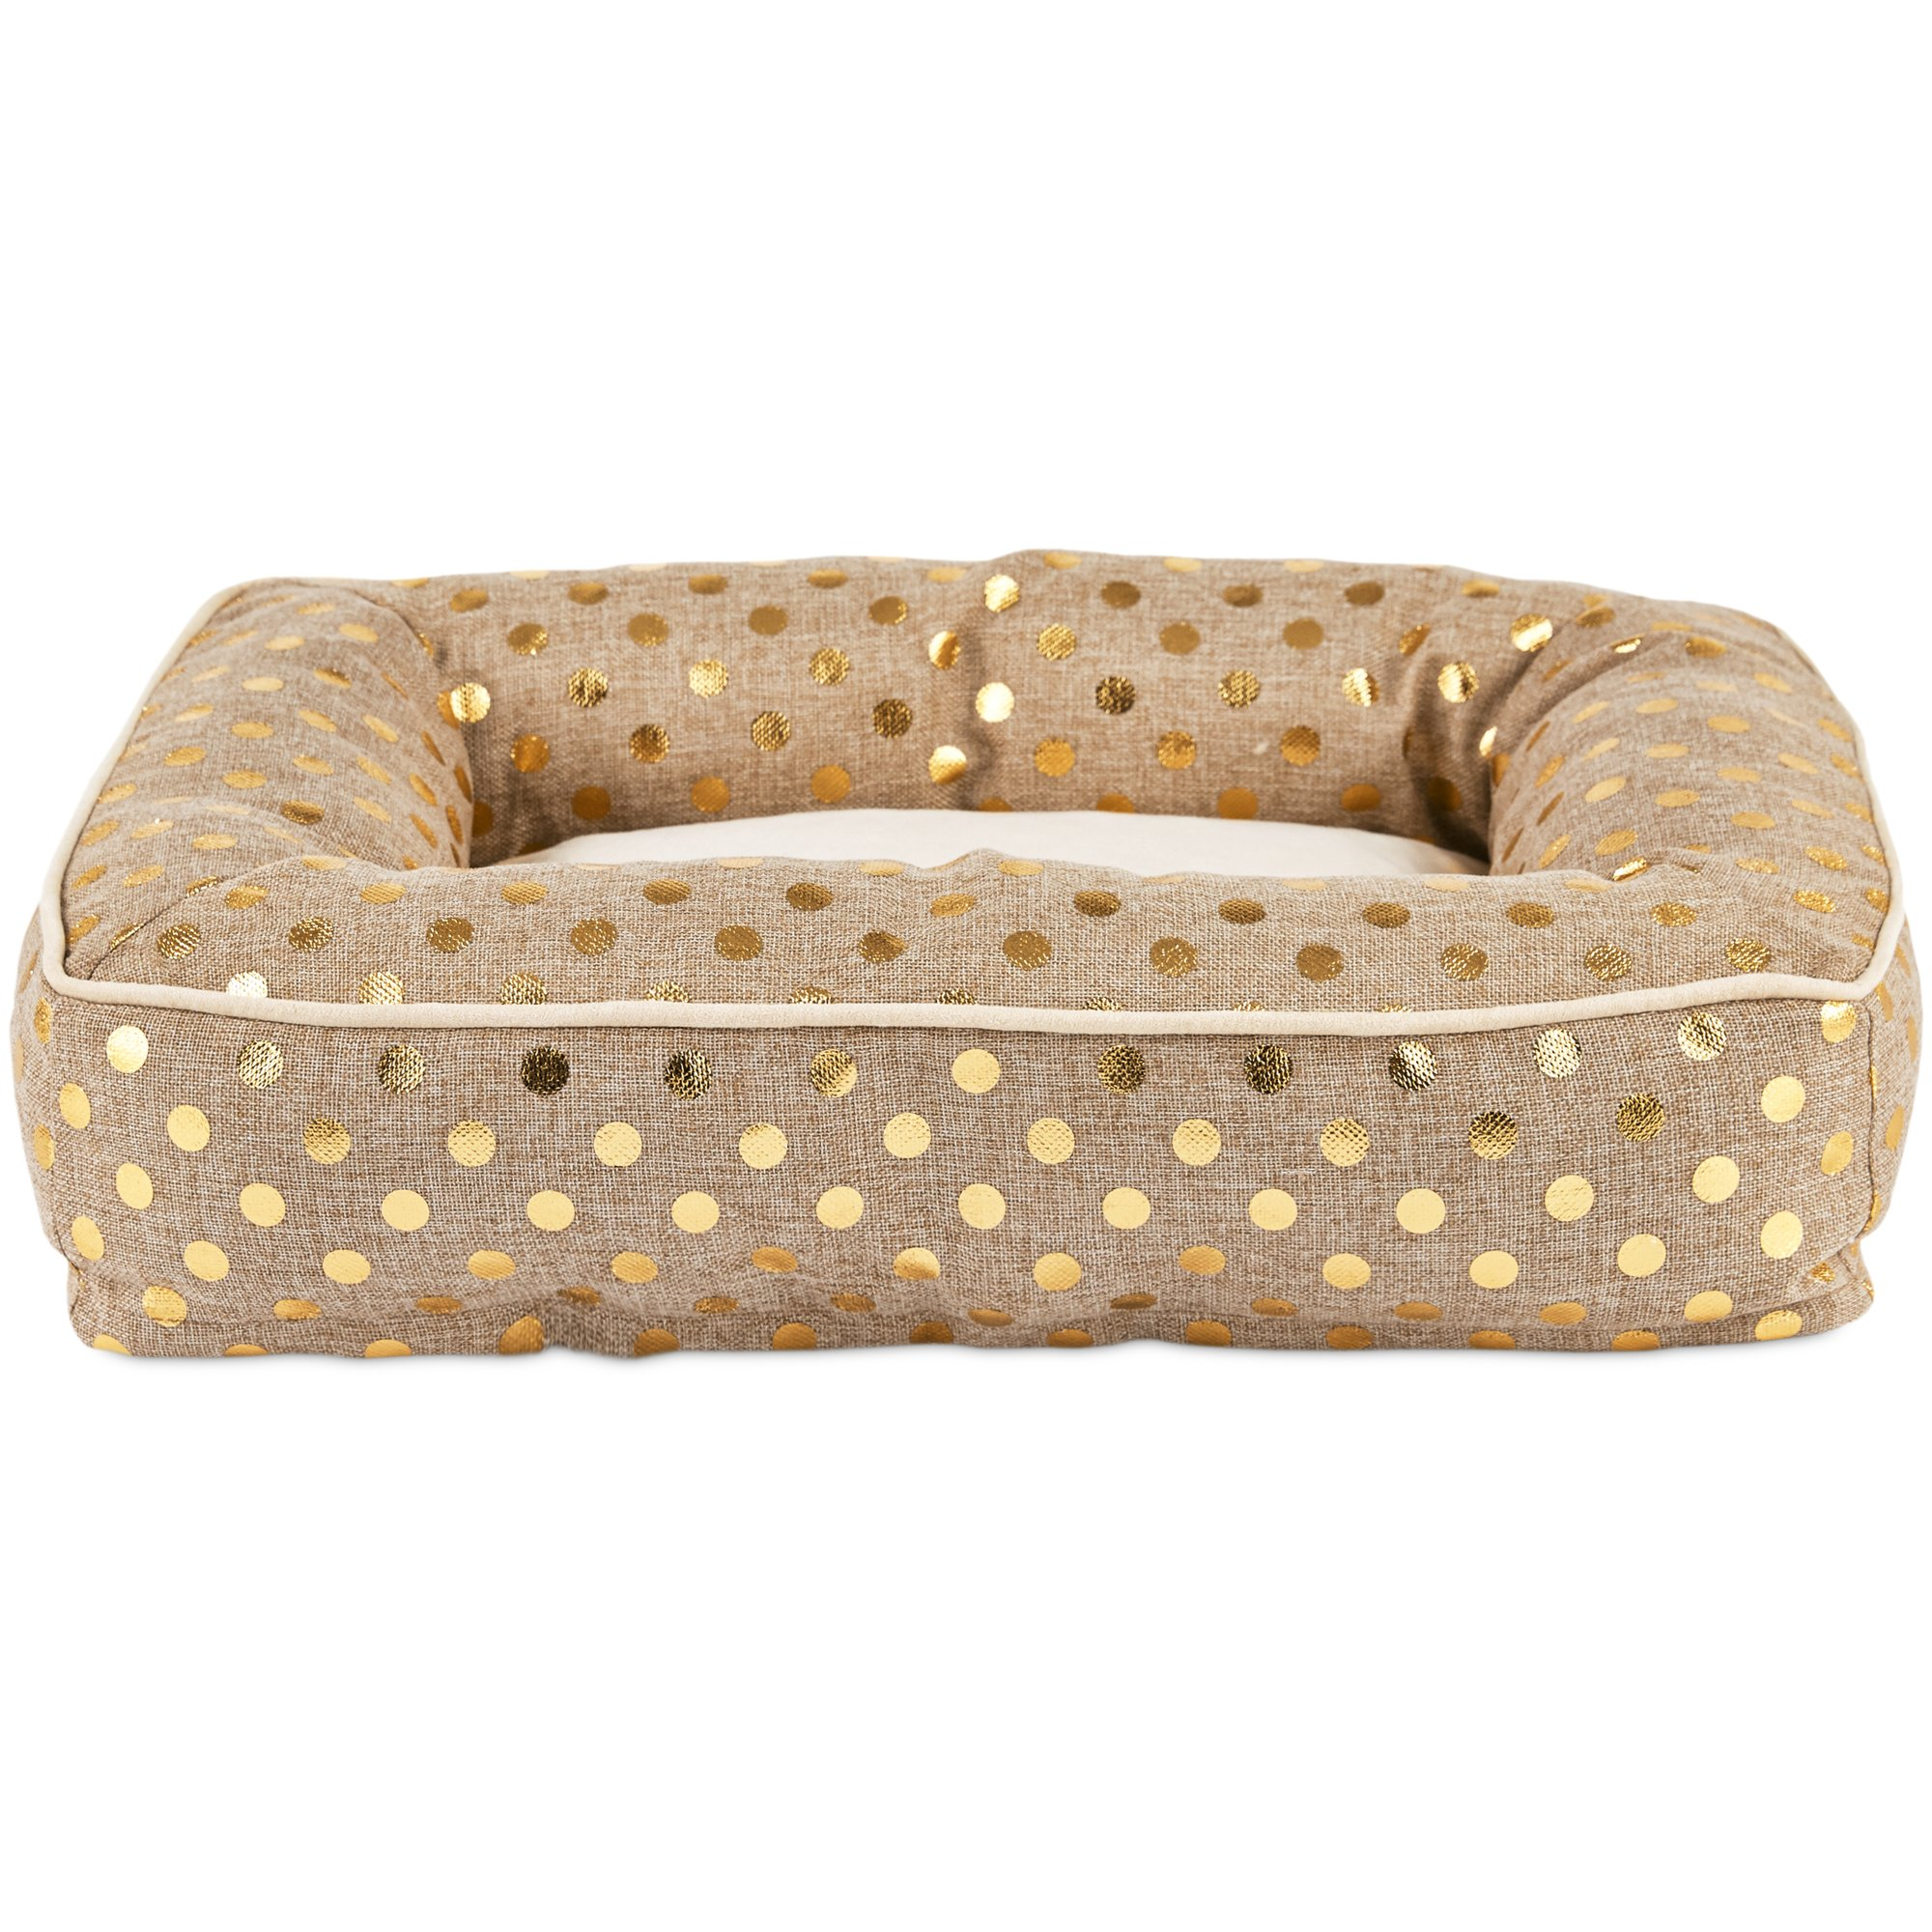 bed cream petco x petmate aspen dog self product pet beds spice spicecream warming and cat